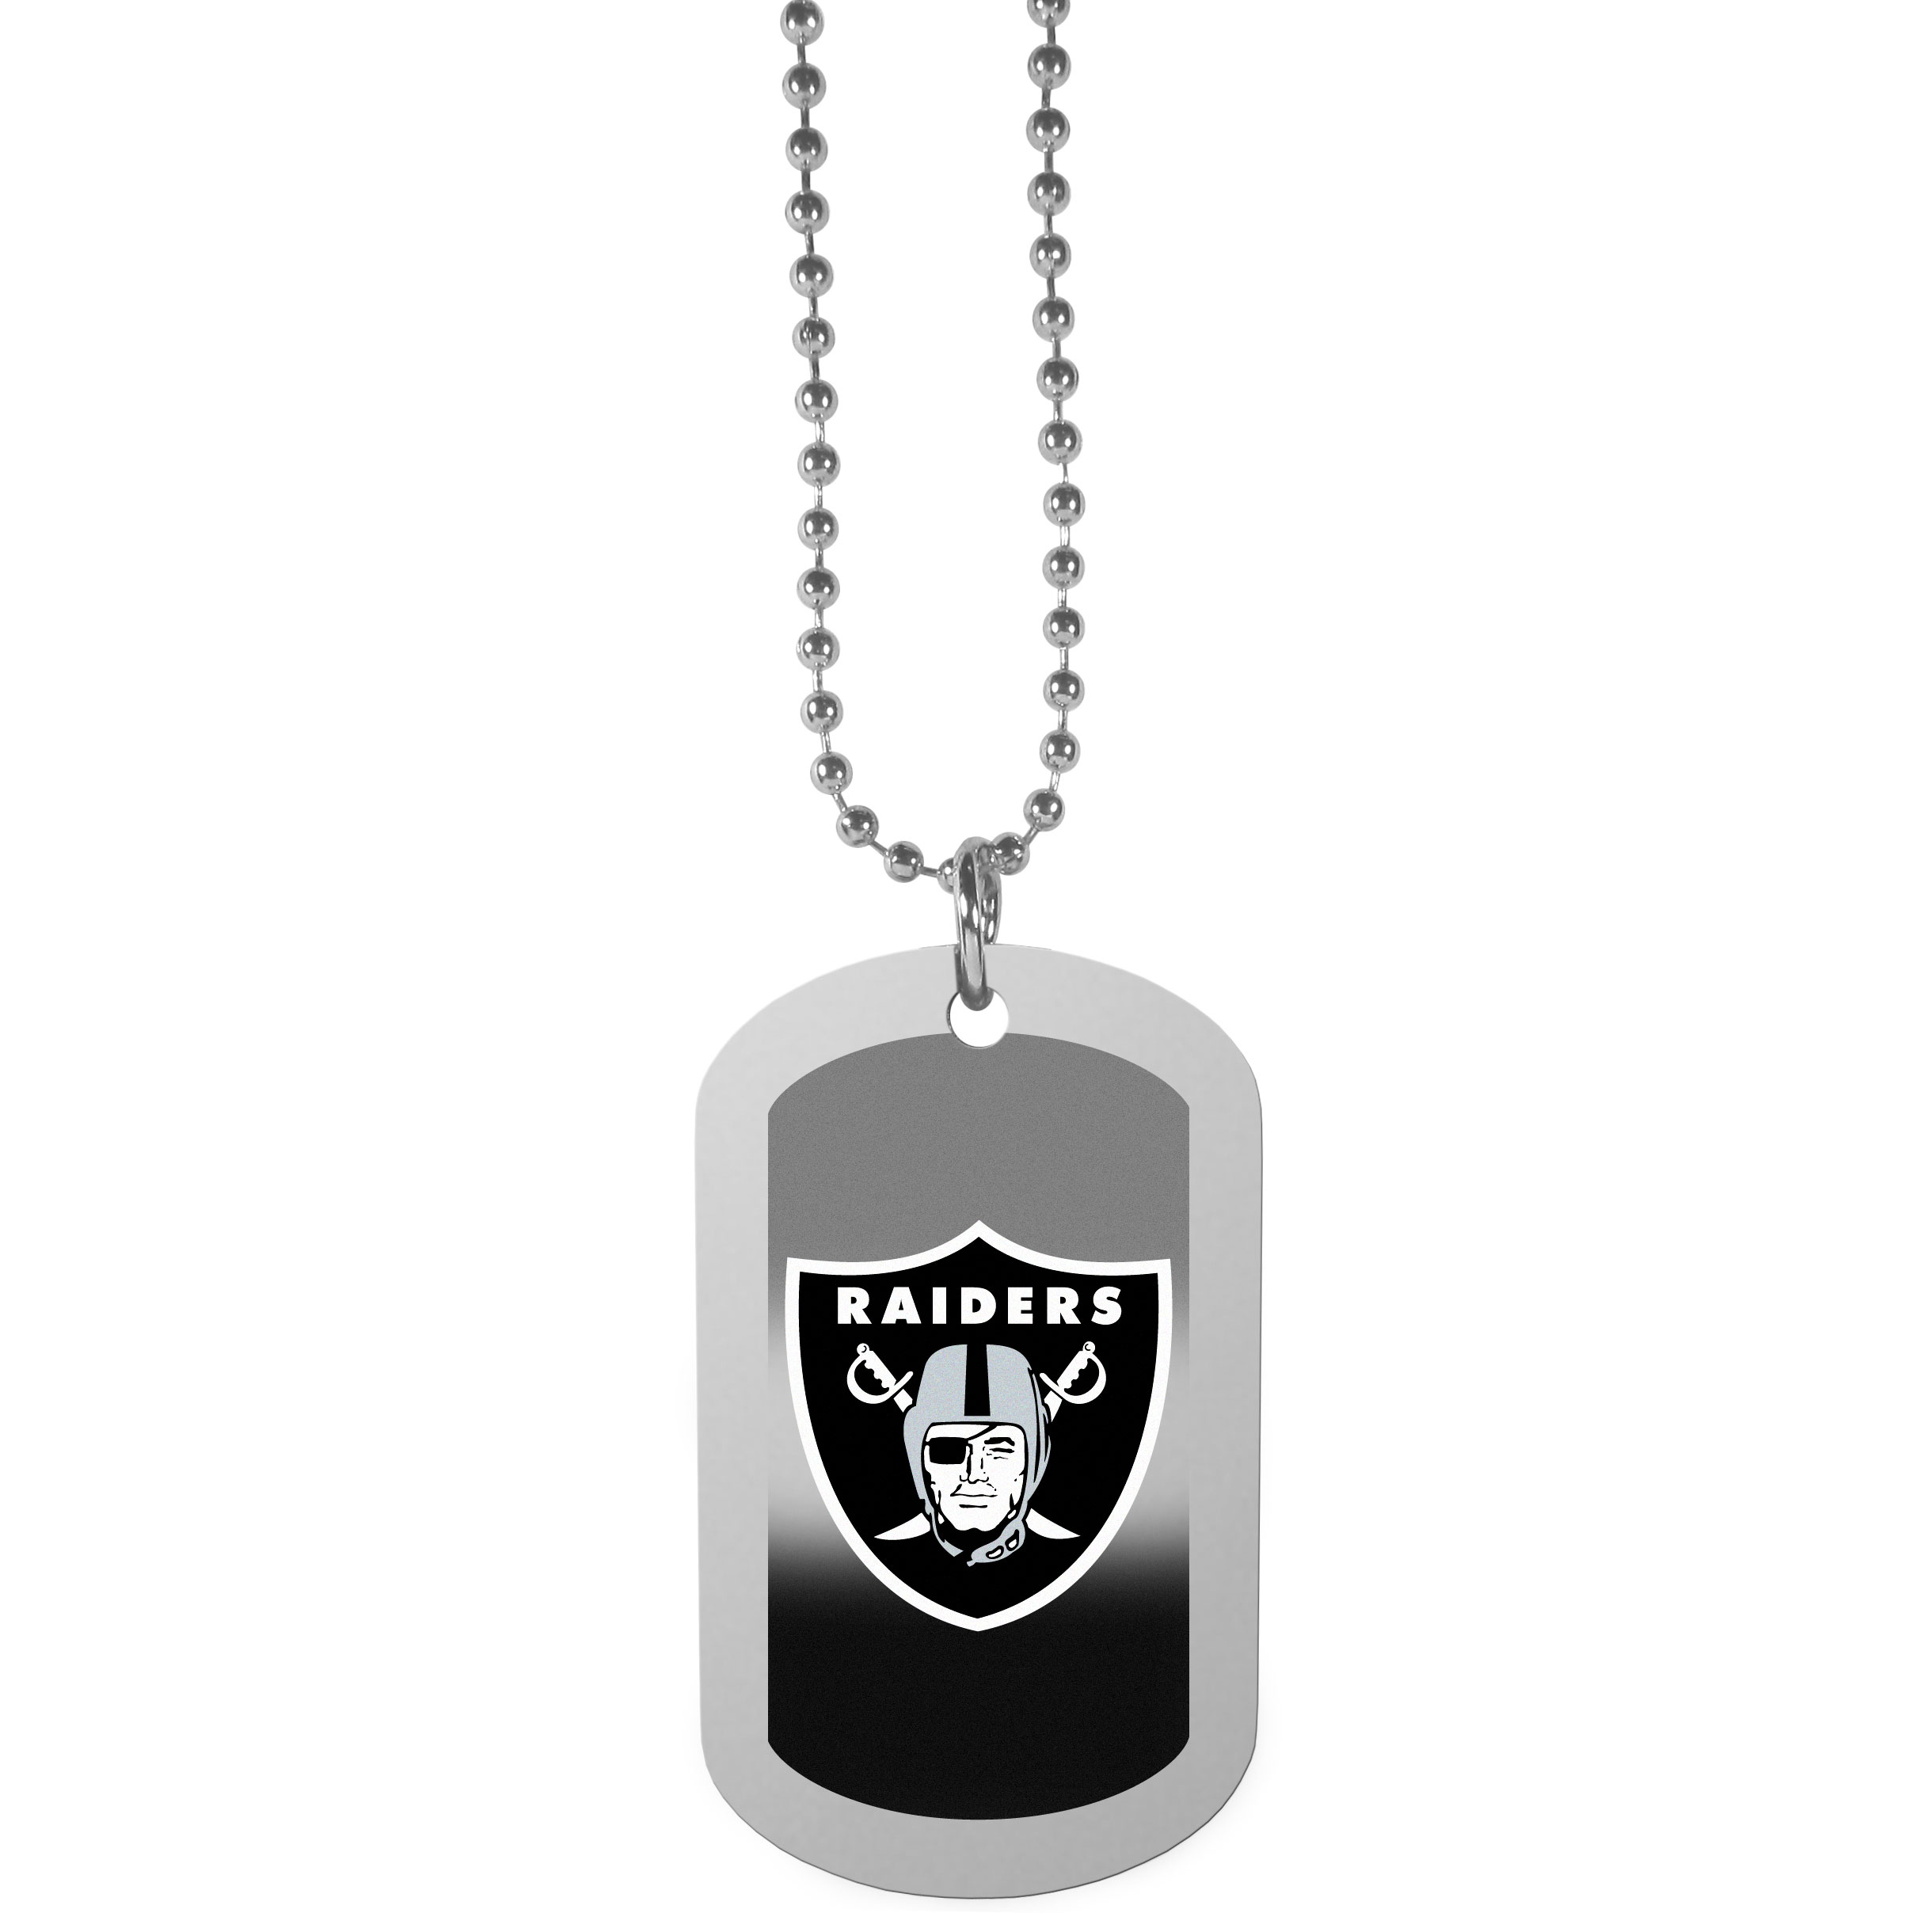 Oakland Raiders Team Tag Necklace - Dog tag necklaces are a fashion statement that is here to stay. The sporty version of the classic tag features a gradient print in team colors featuring a full color team logo over a high polish tag to create a bold and sporty look. The tag comes on a 26 inch ball chain with a ball and joint clasp. Any Oakland Raiders would be proud to wear this attractive fashion accessory.